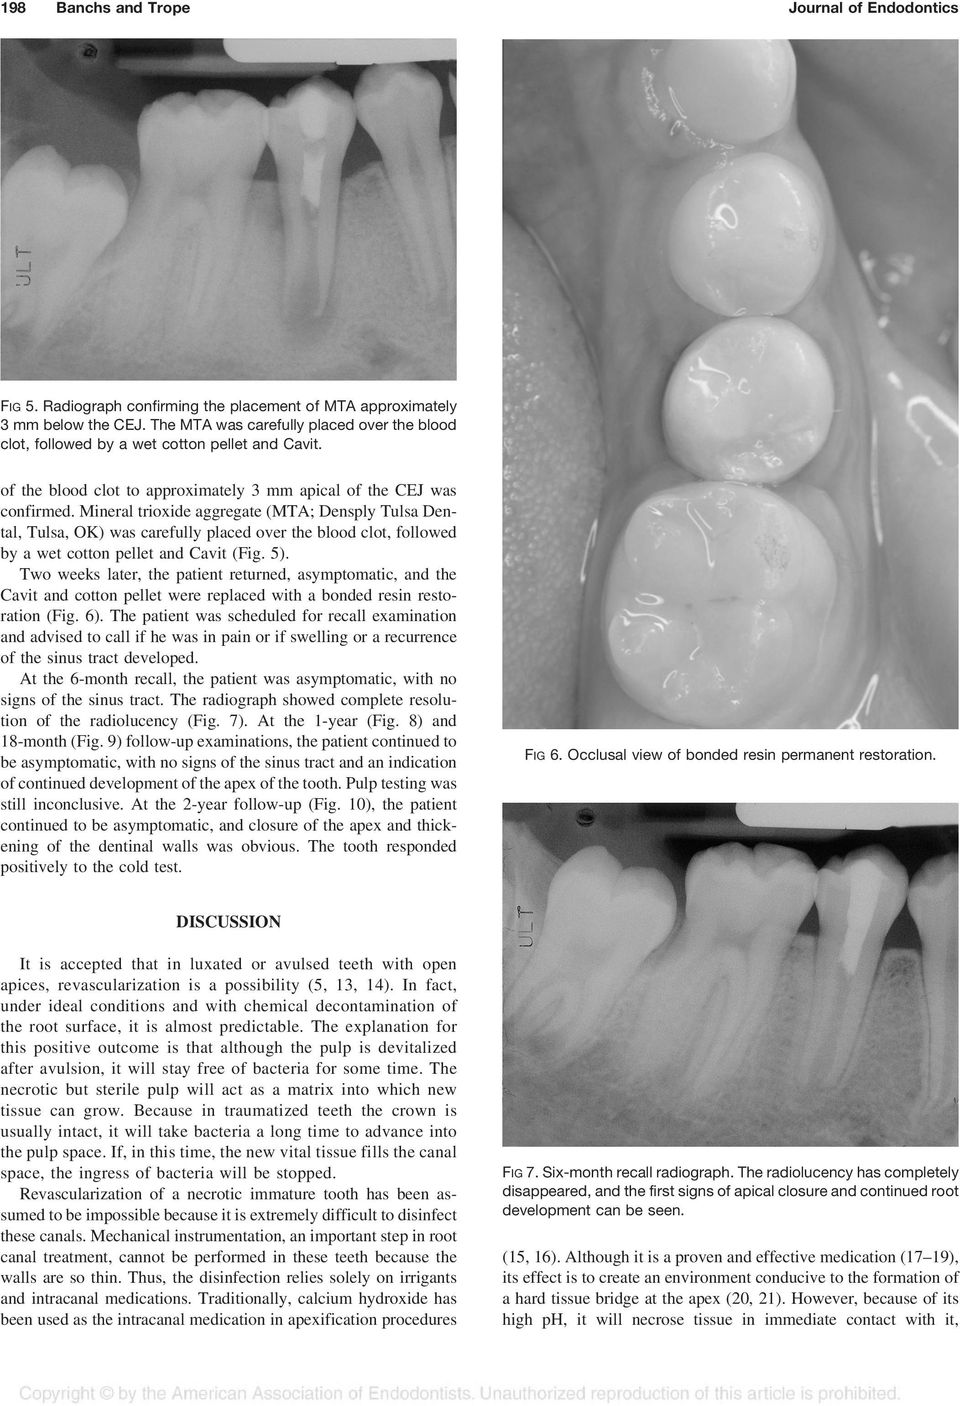 Mineral trioxide aggregate (MTA; Densply Tulsa Dental, Tulsa, OK) was carefully placed over the blood clot, followed by a wet cotton pellet and Cavit (Fig. 5).